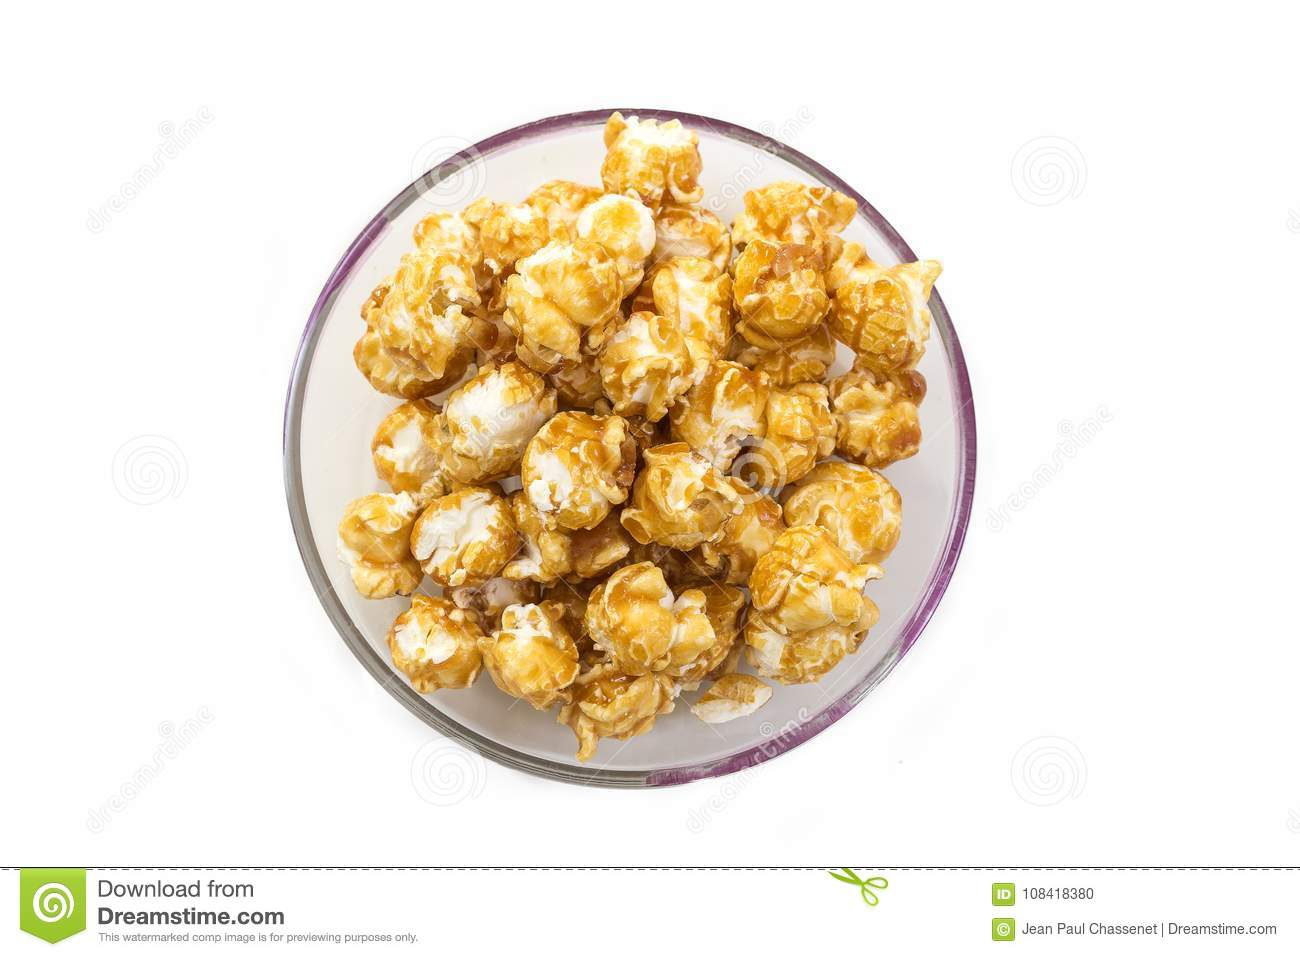 A pile of caramel corn in a bowl on a white background